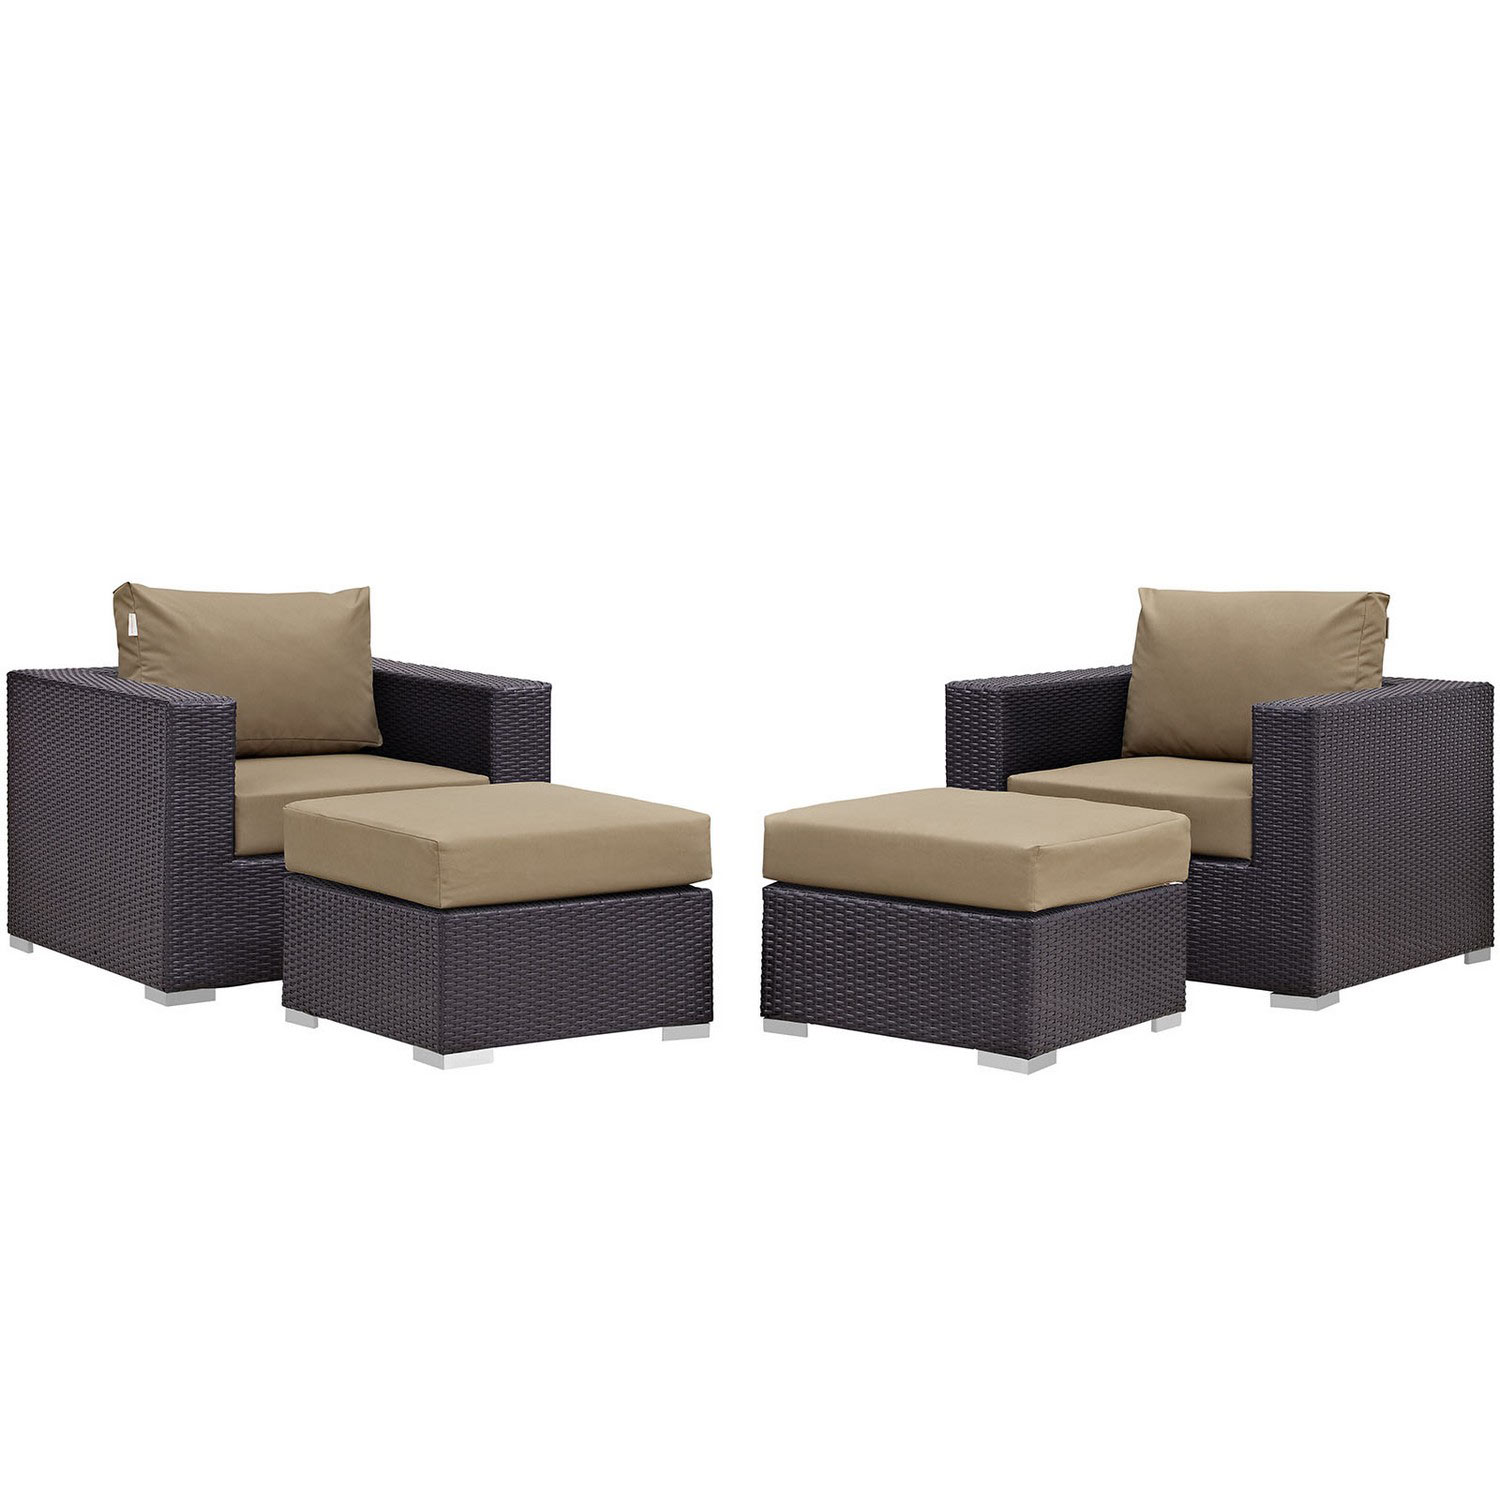 Modway Convene 4 Piece Outdoor Patio Sectional Set - Espresso Mocha